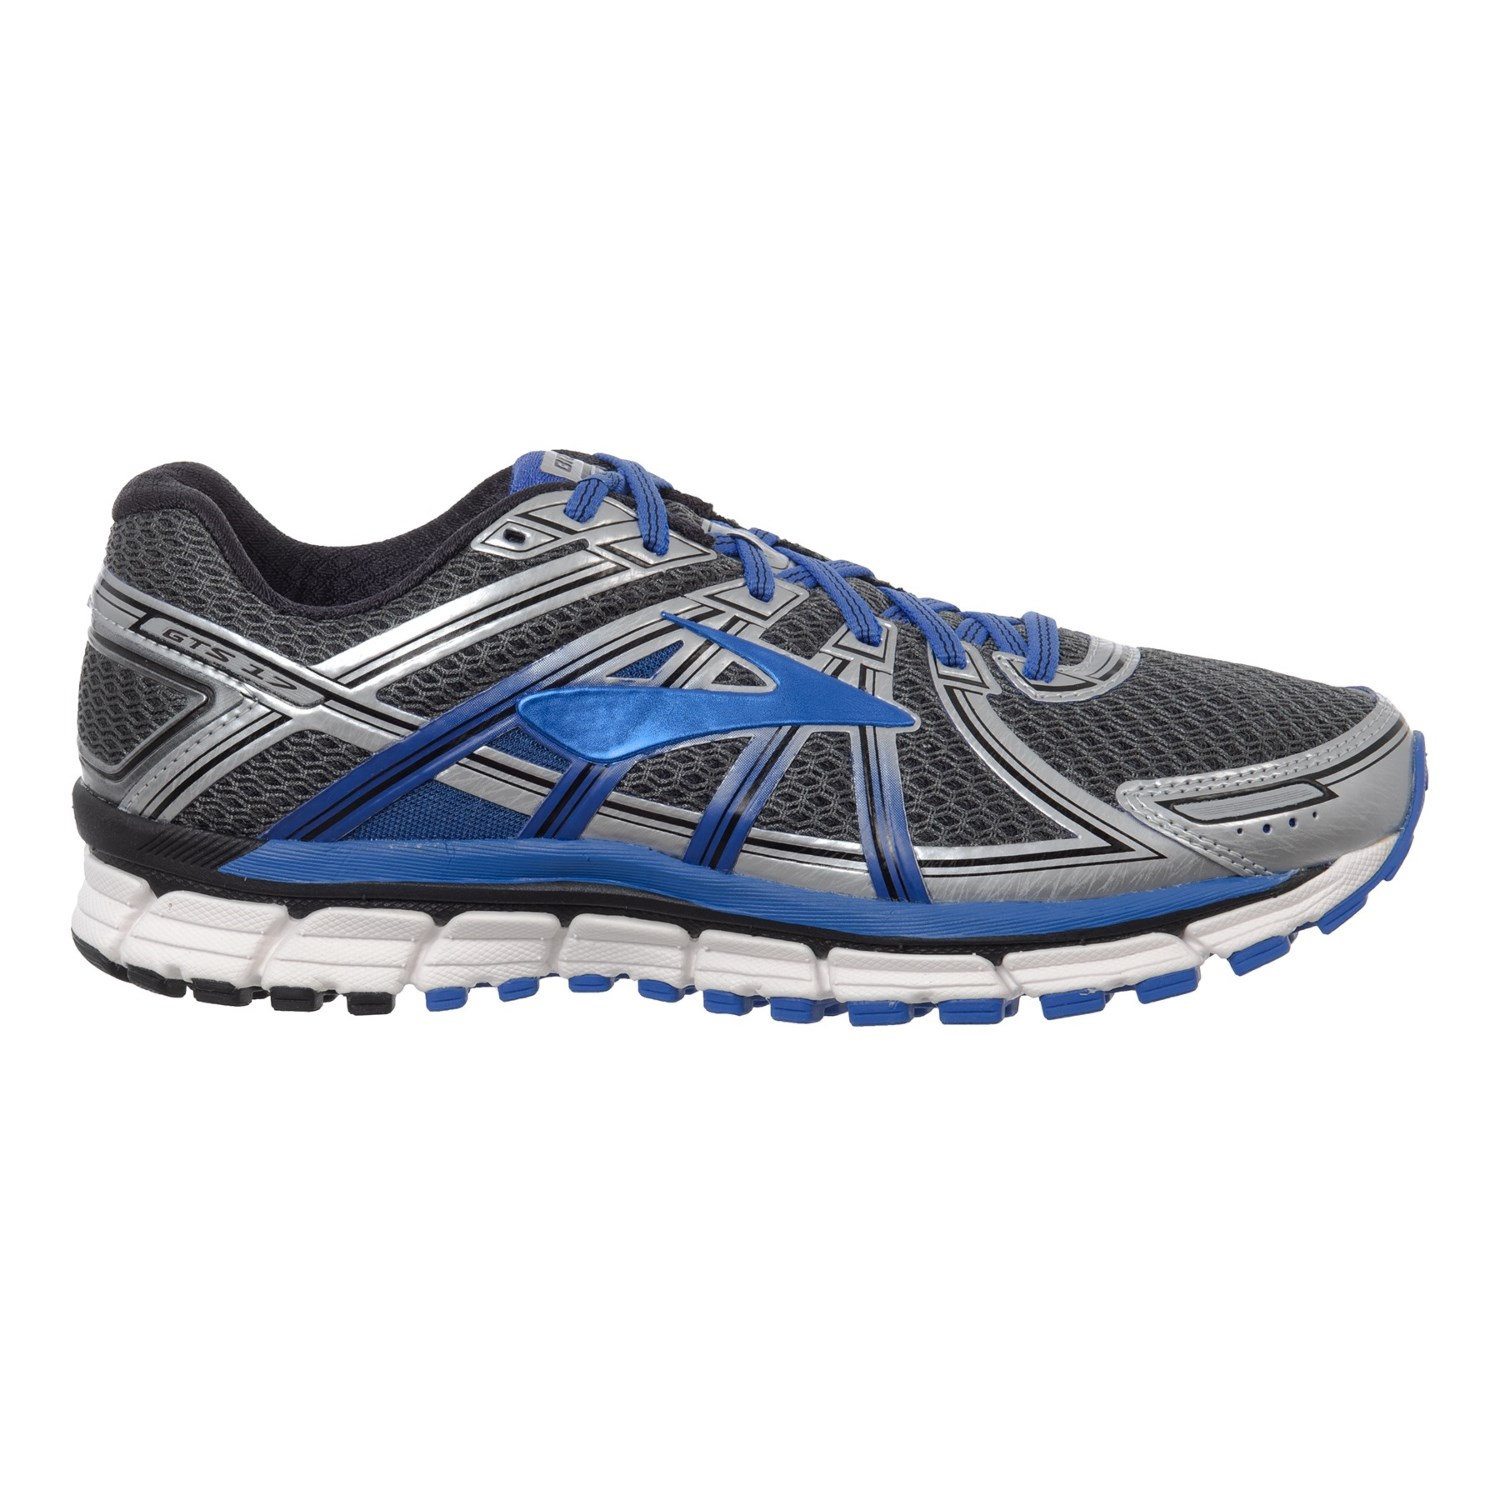 5fdfd8d5225 Brooks Adrenaline GTS 17 Running Shoes (For Men)